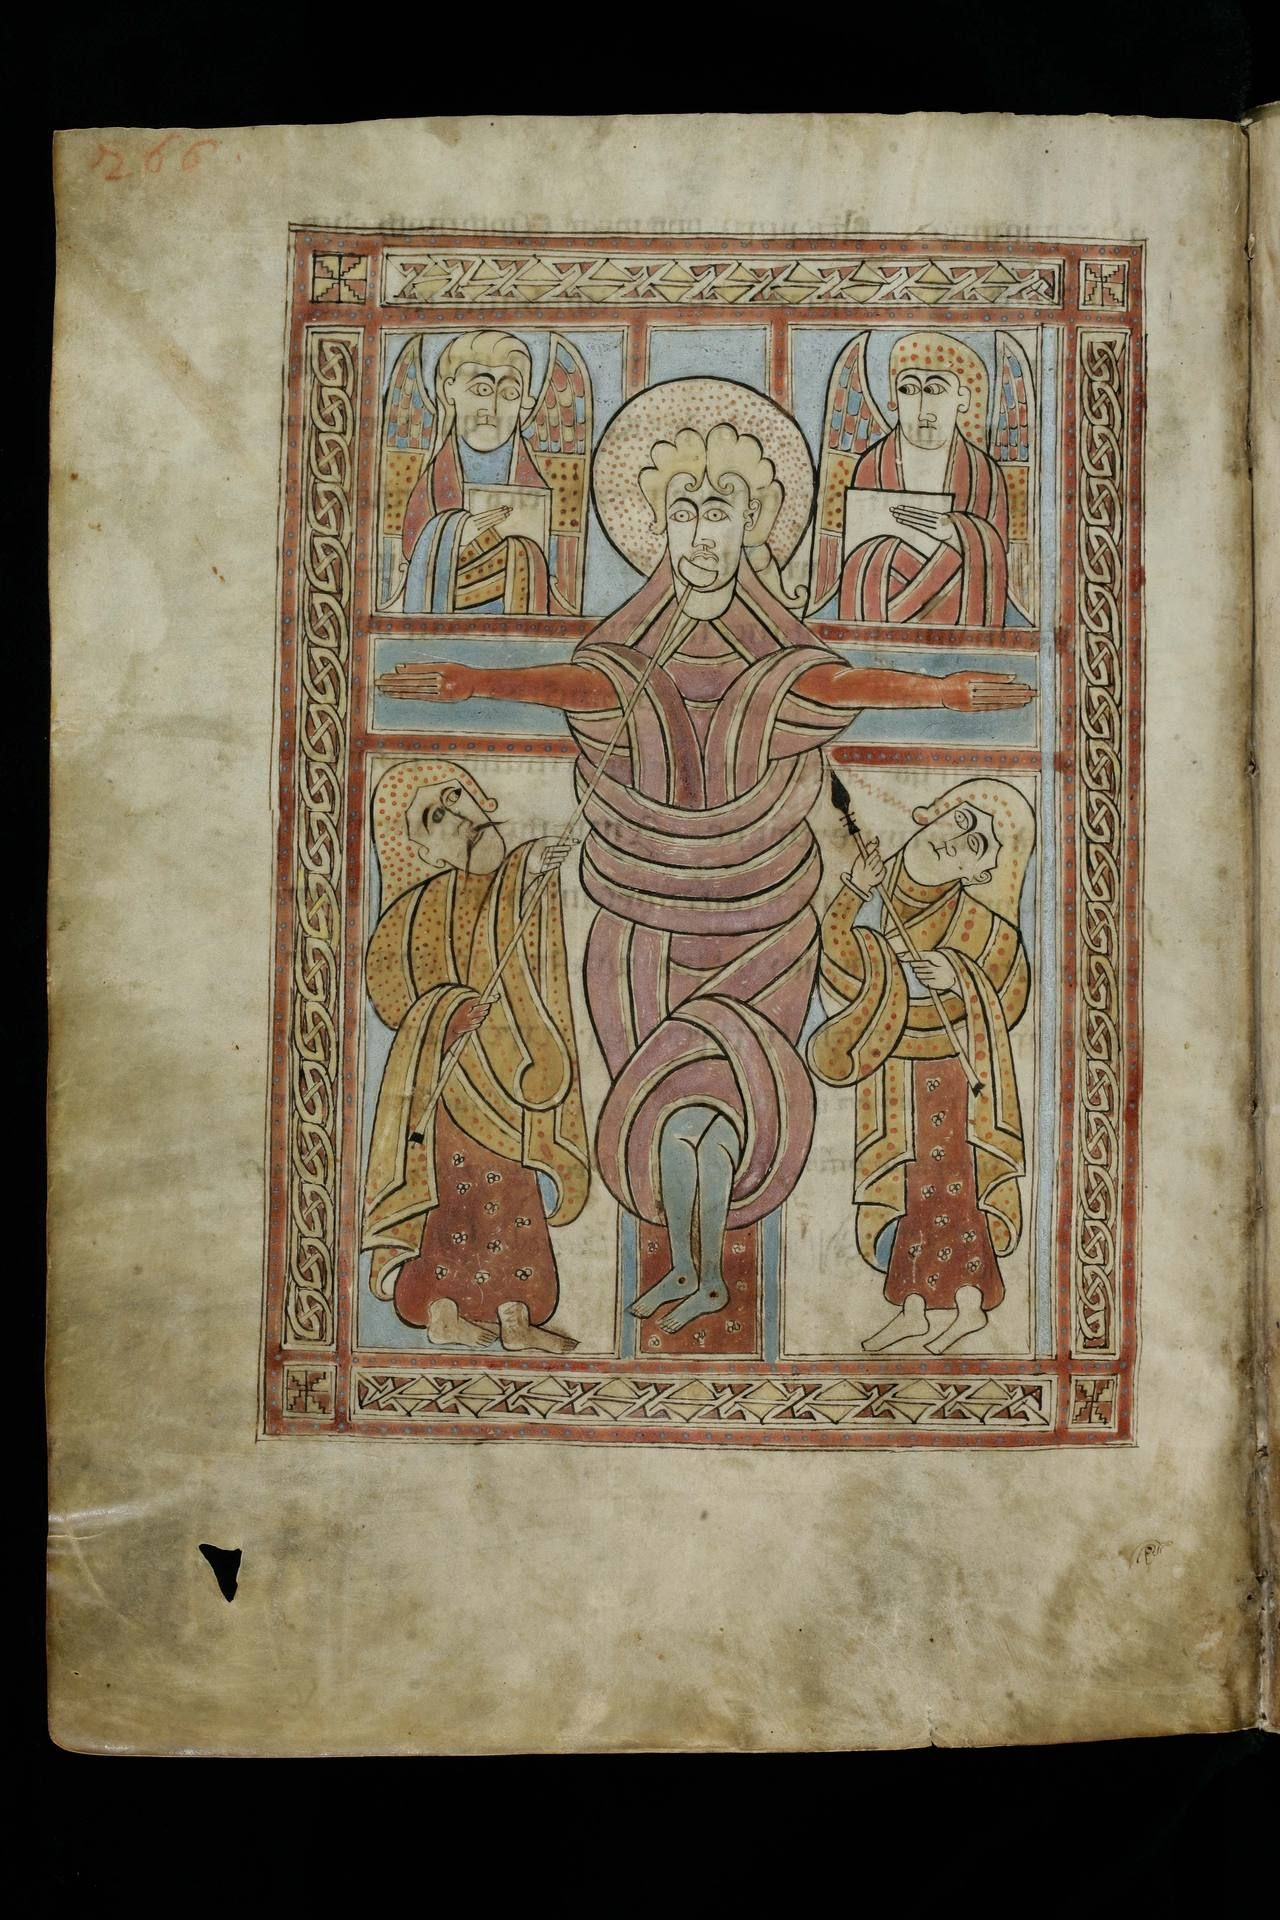 Cod. Sang. 51 -Irish Evangelary from St. Gall Source:http://bit.ly/17qUbzAThe Irish Gospel Book of St. Gall. Gospels according to Matthew, Mark, Luke and John, illustrated with 12 decorated pages, written and illuminated by Irish monks around 750 in Ireland.